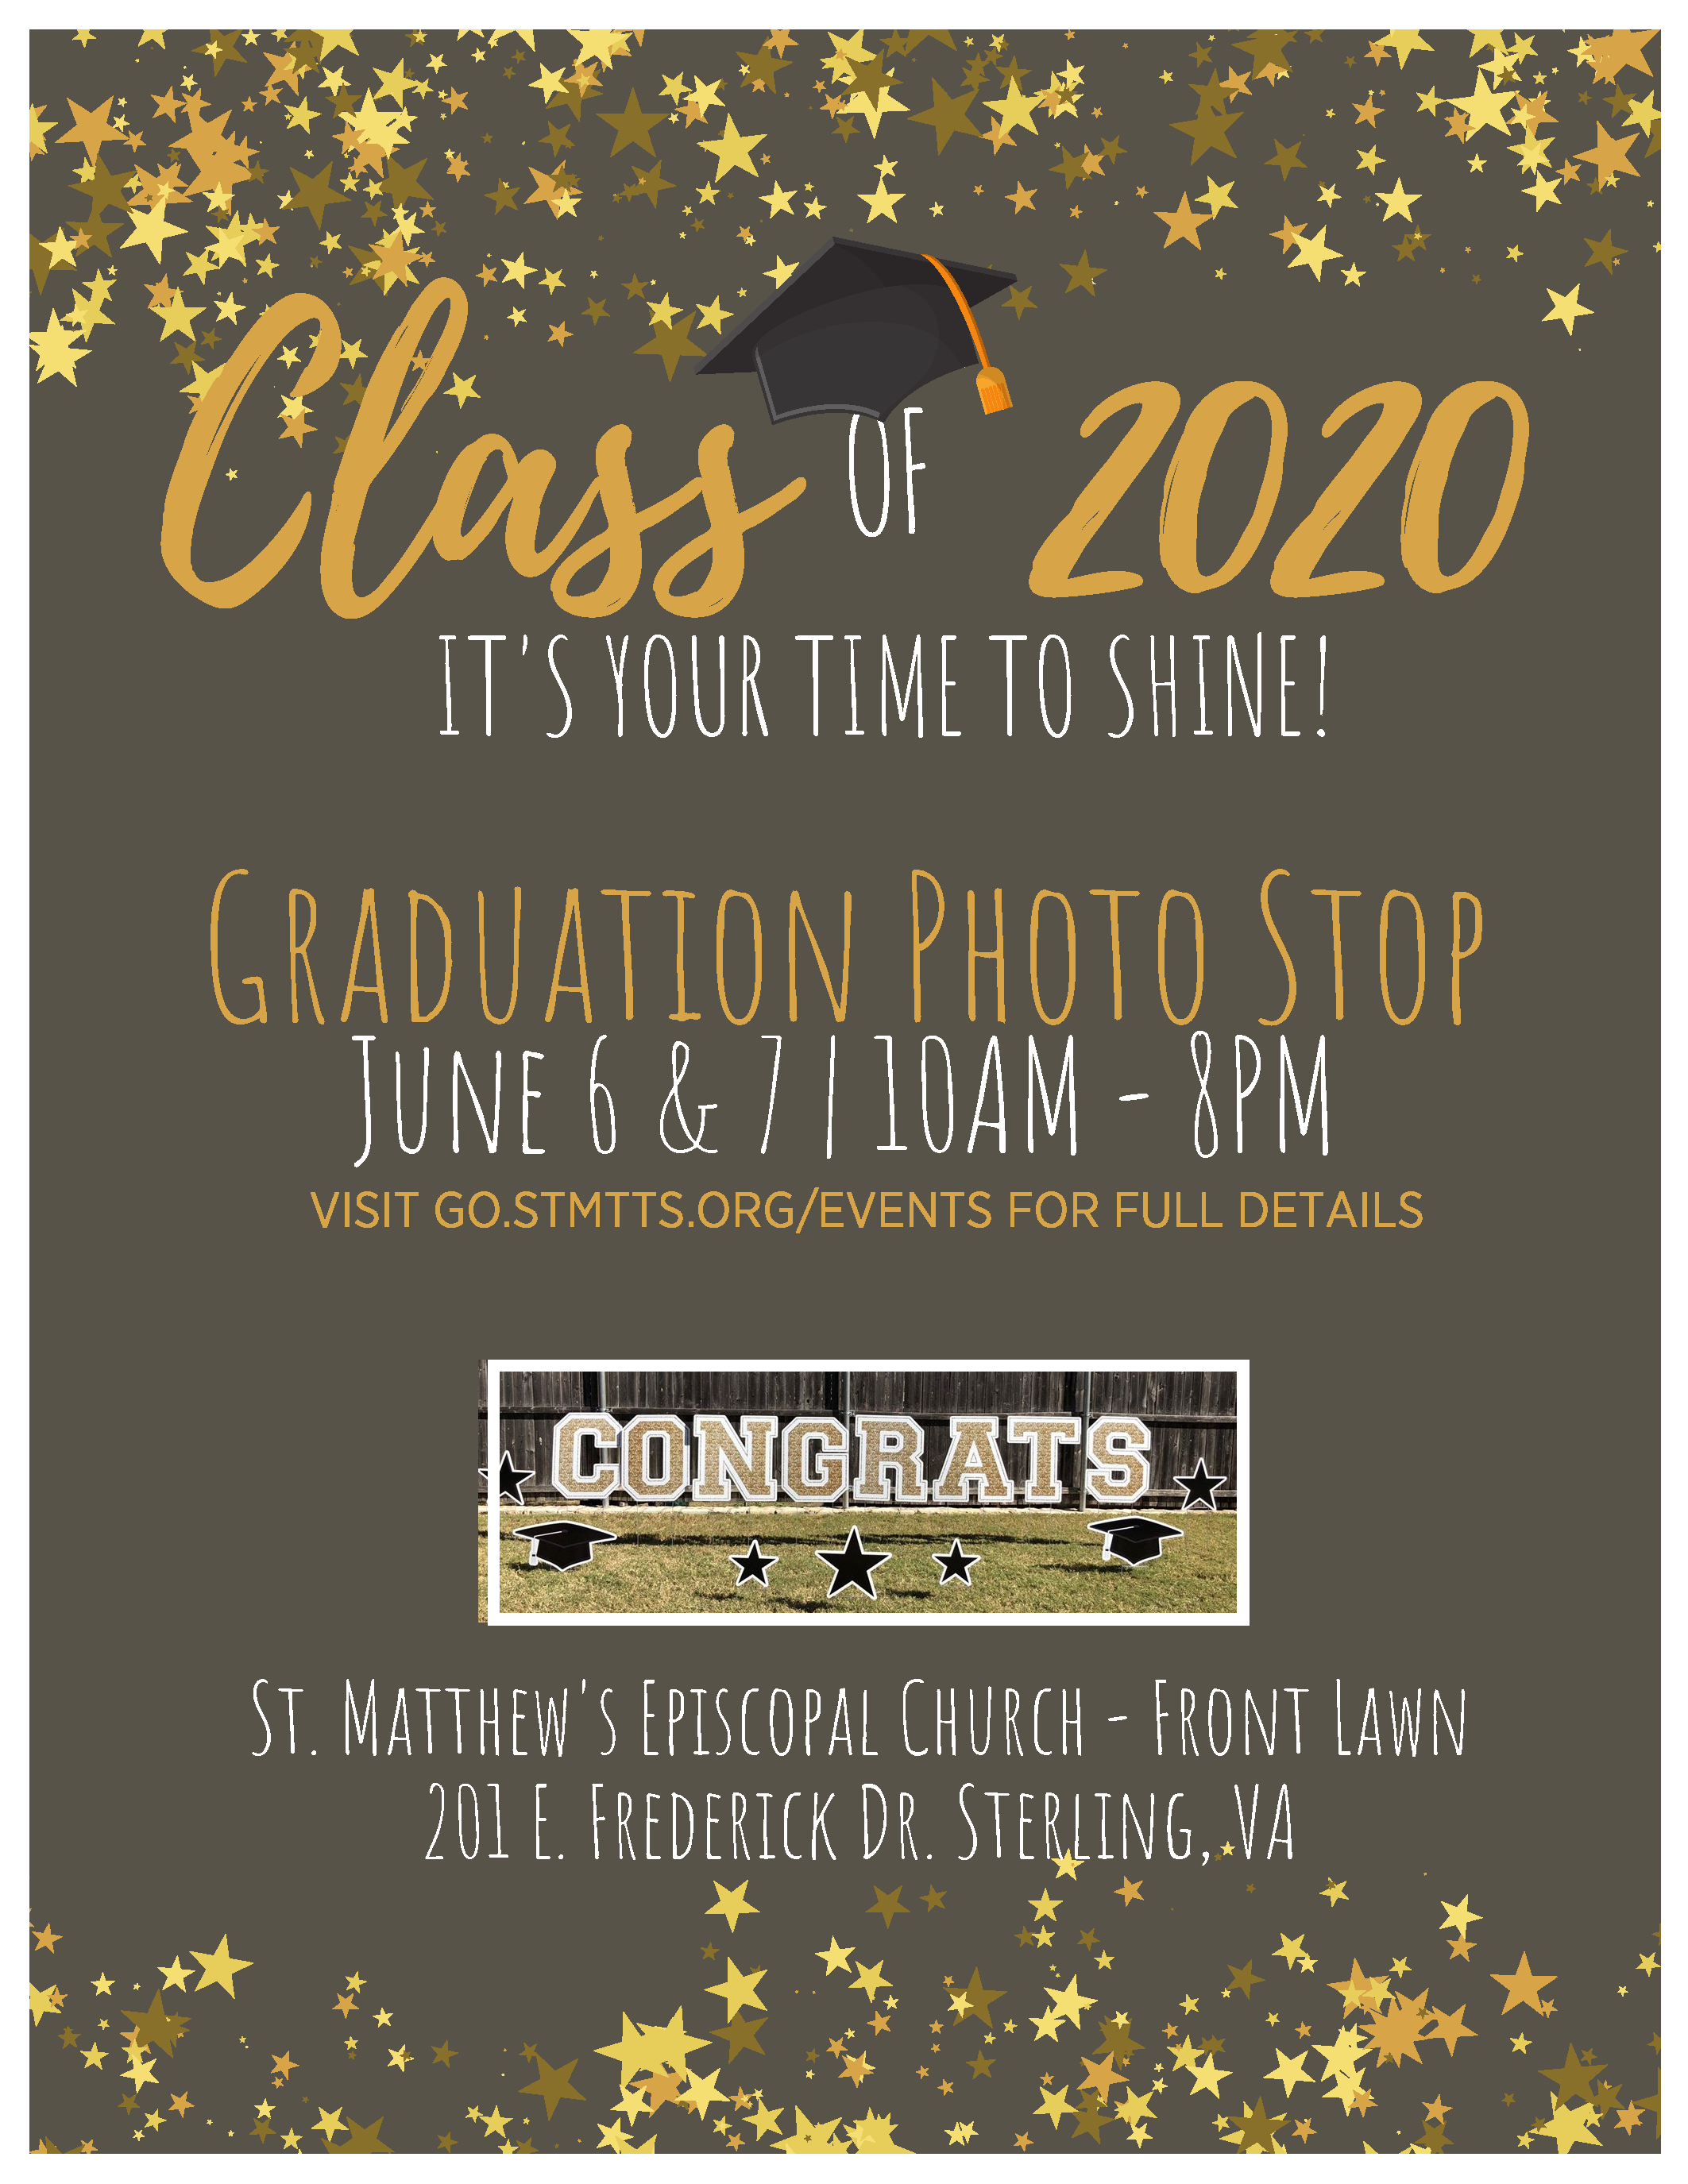 graduation photo stop flyer